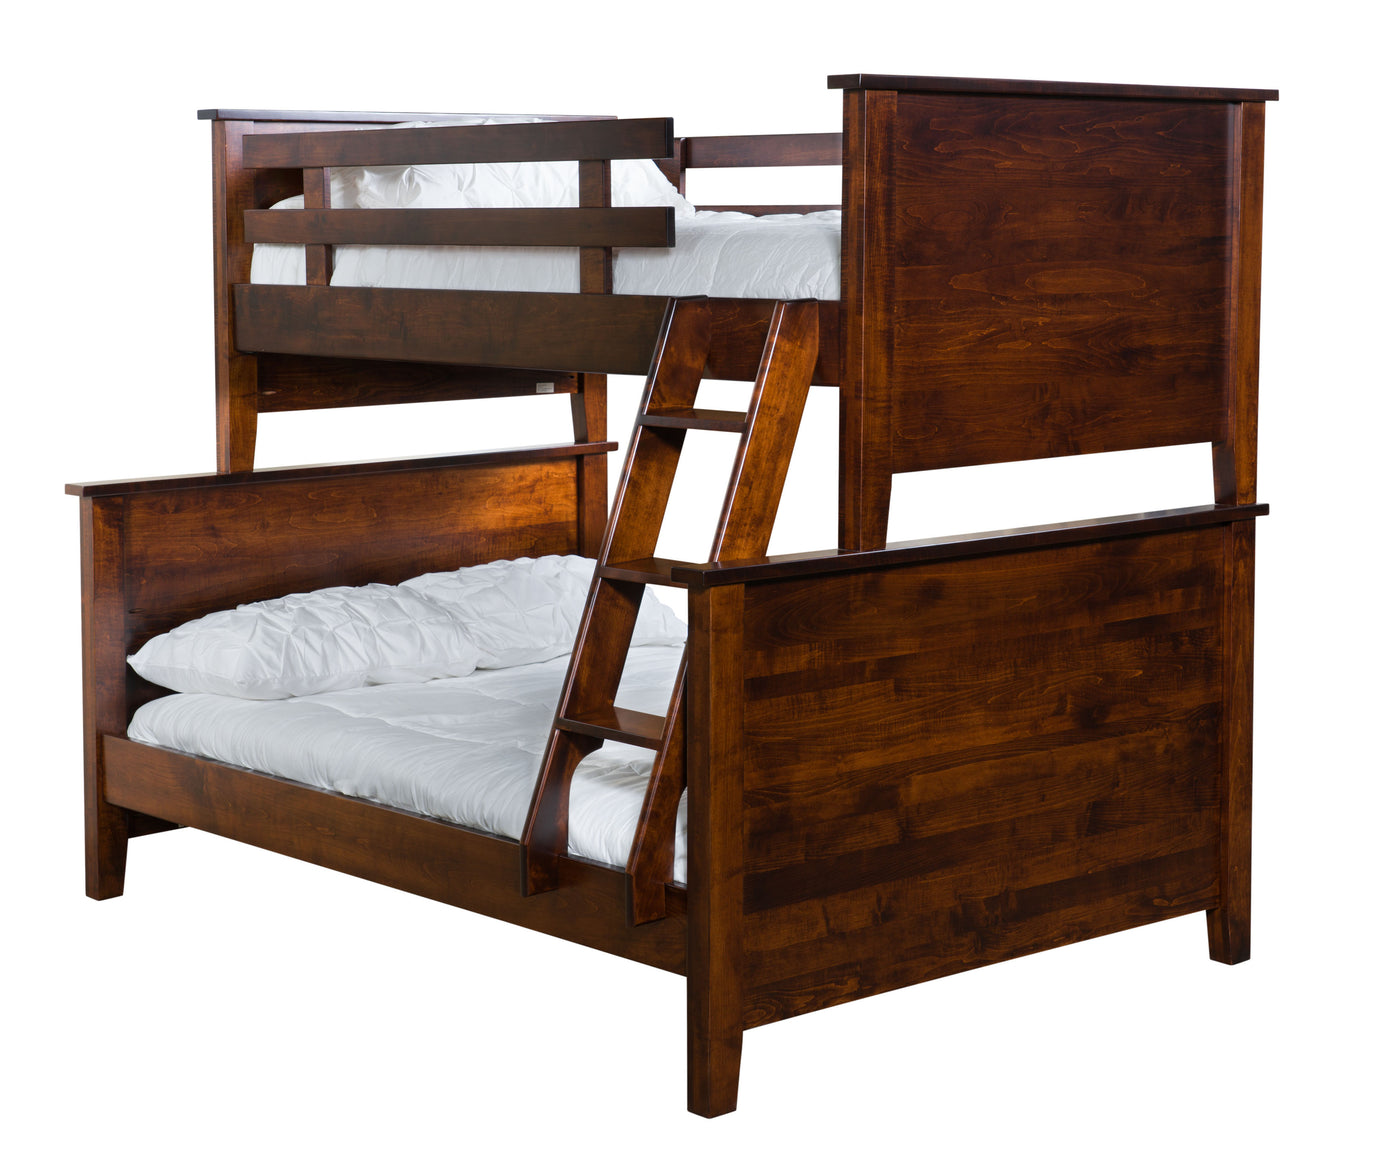 Shaker Bunk Bed